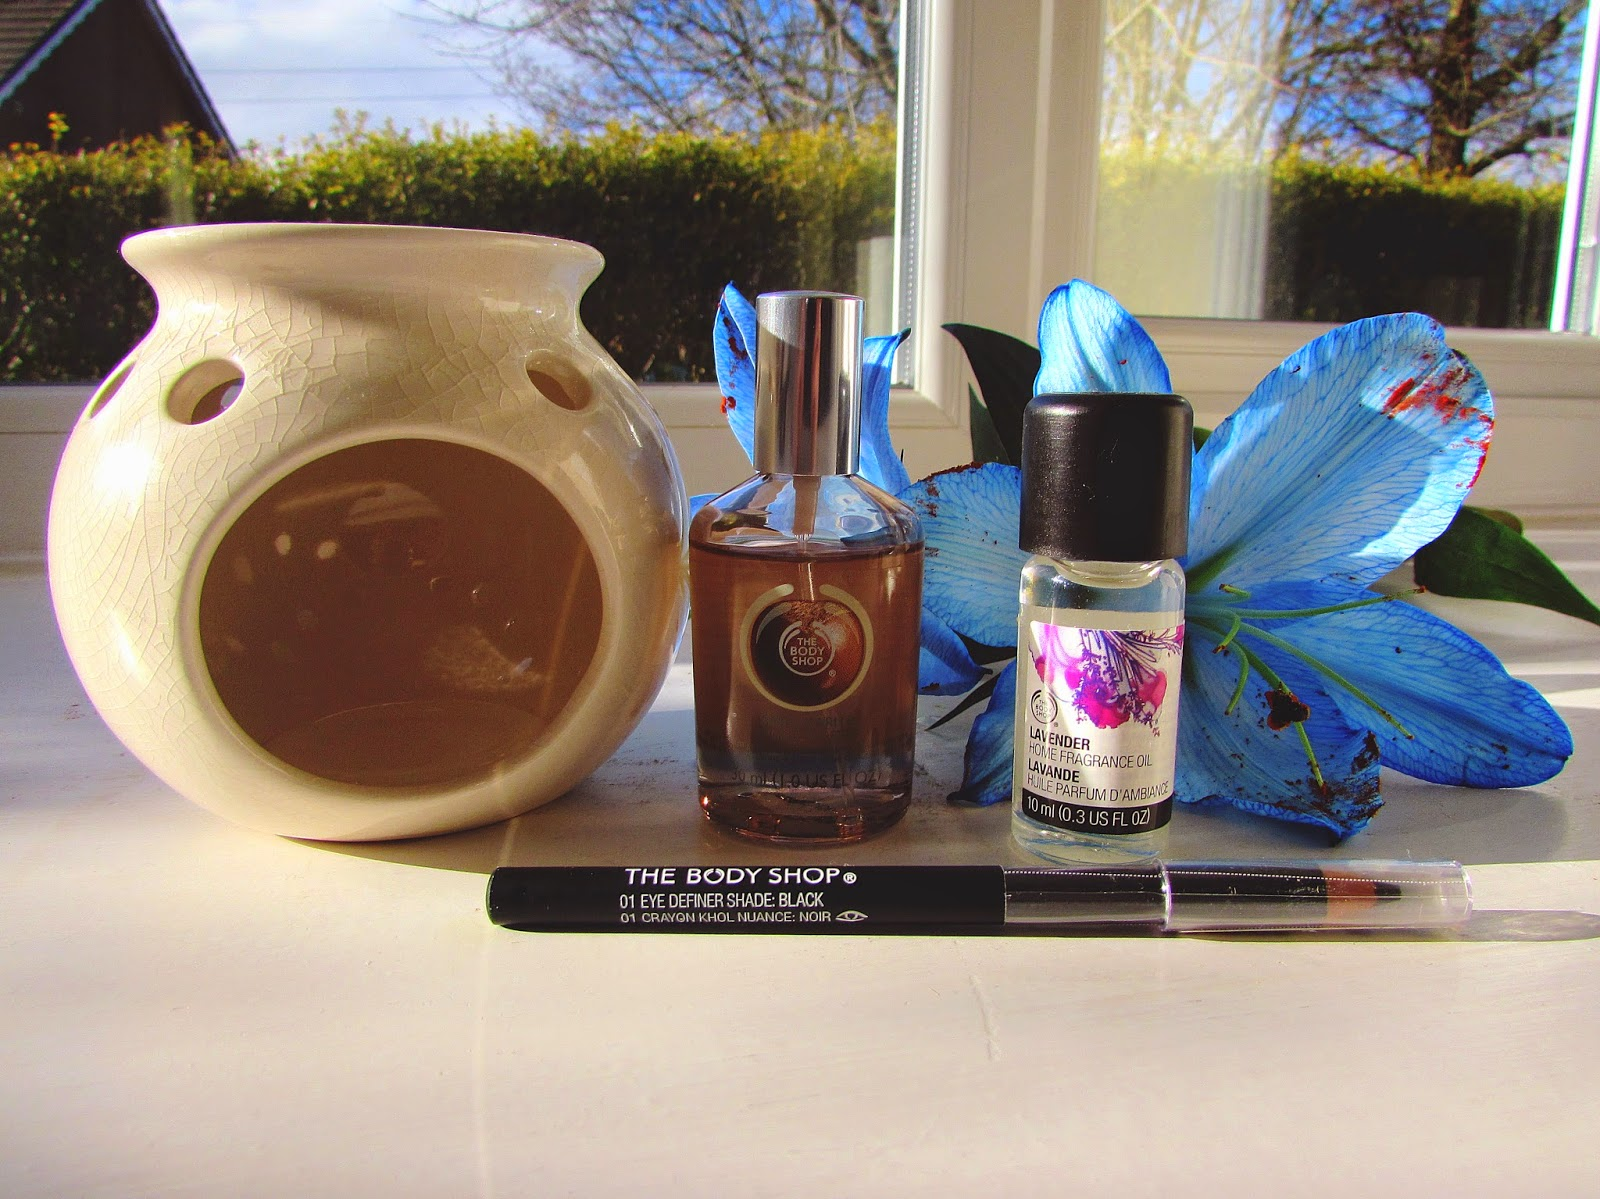 The Body Shop oil burner | Lavender fragrance oil | Shea eau de toilette | Eye definer pencil